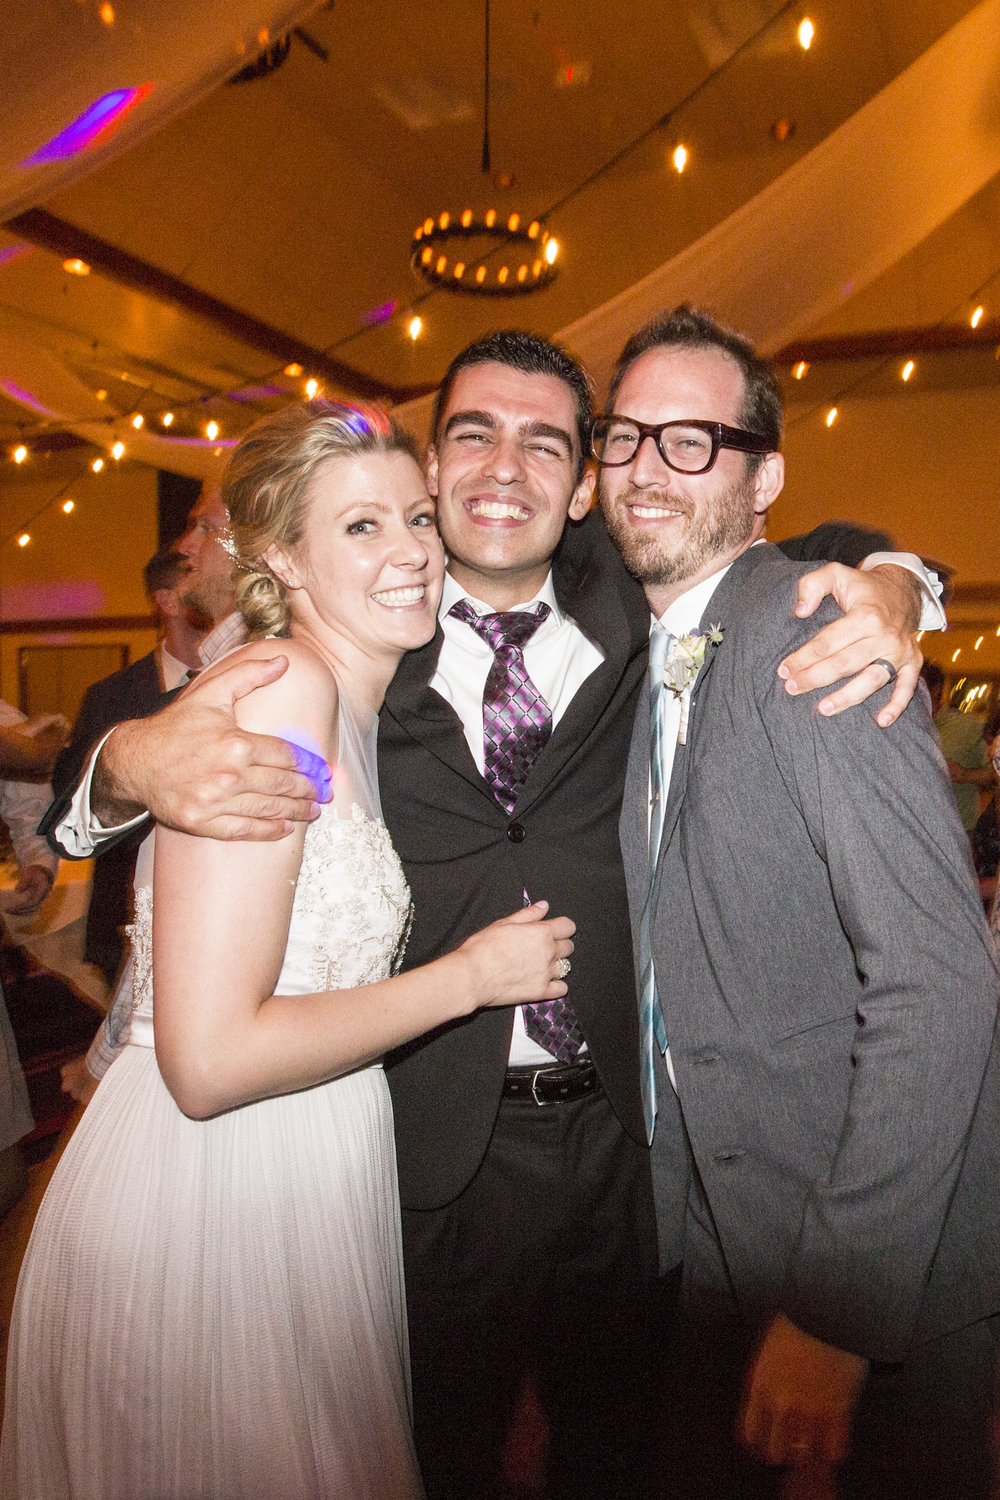 DJ Brock Weddings - Hyatt Lake Tahoe.JPG